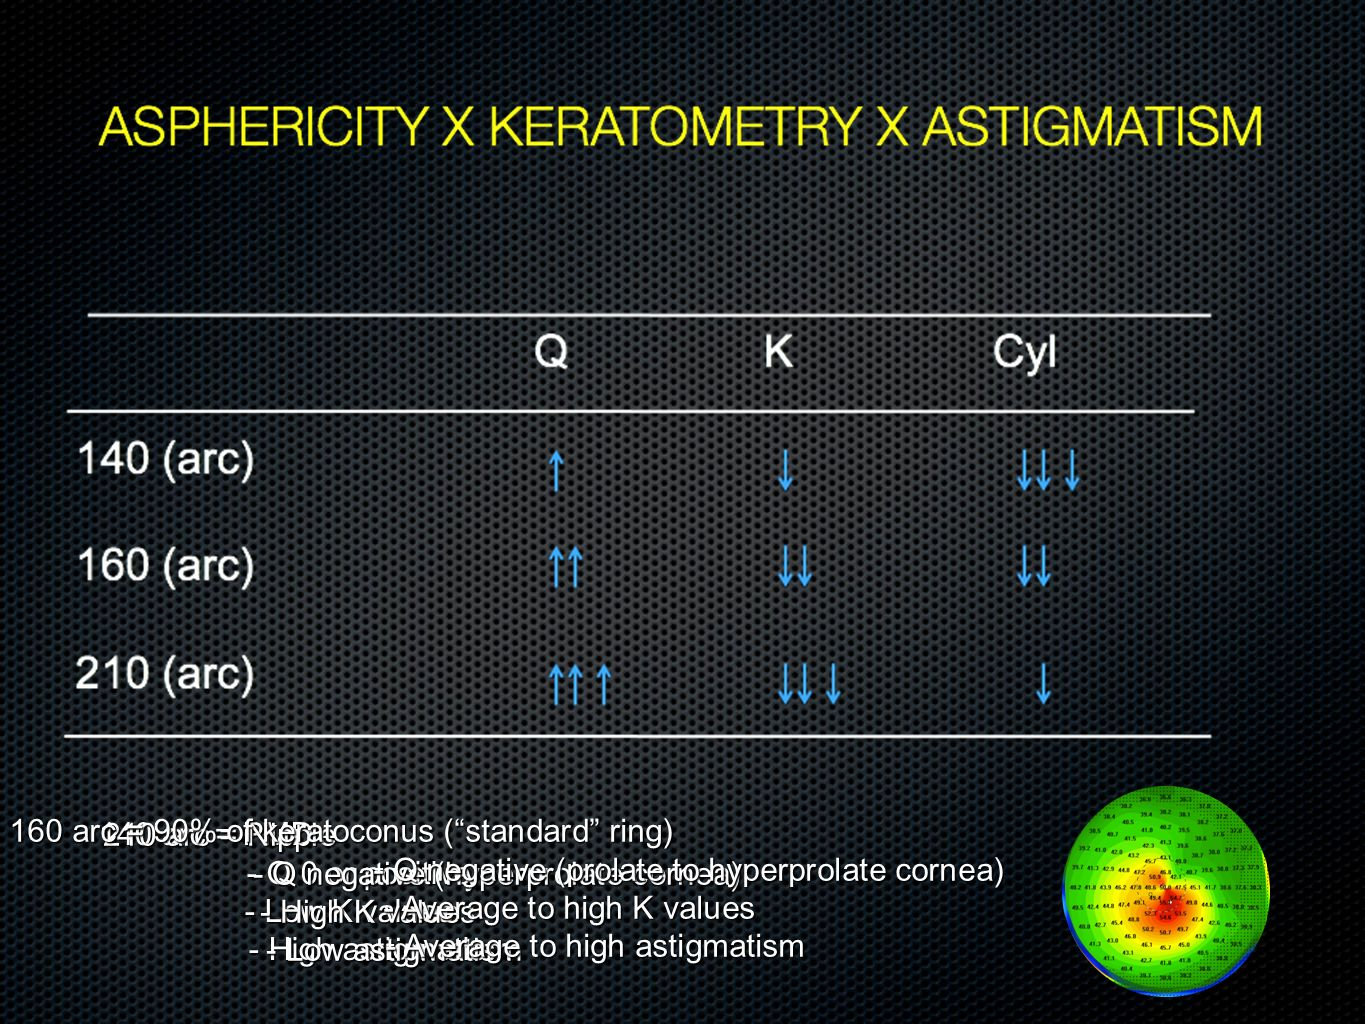 160 arc = 90% of keratoconus ( standard ring)